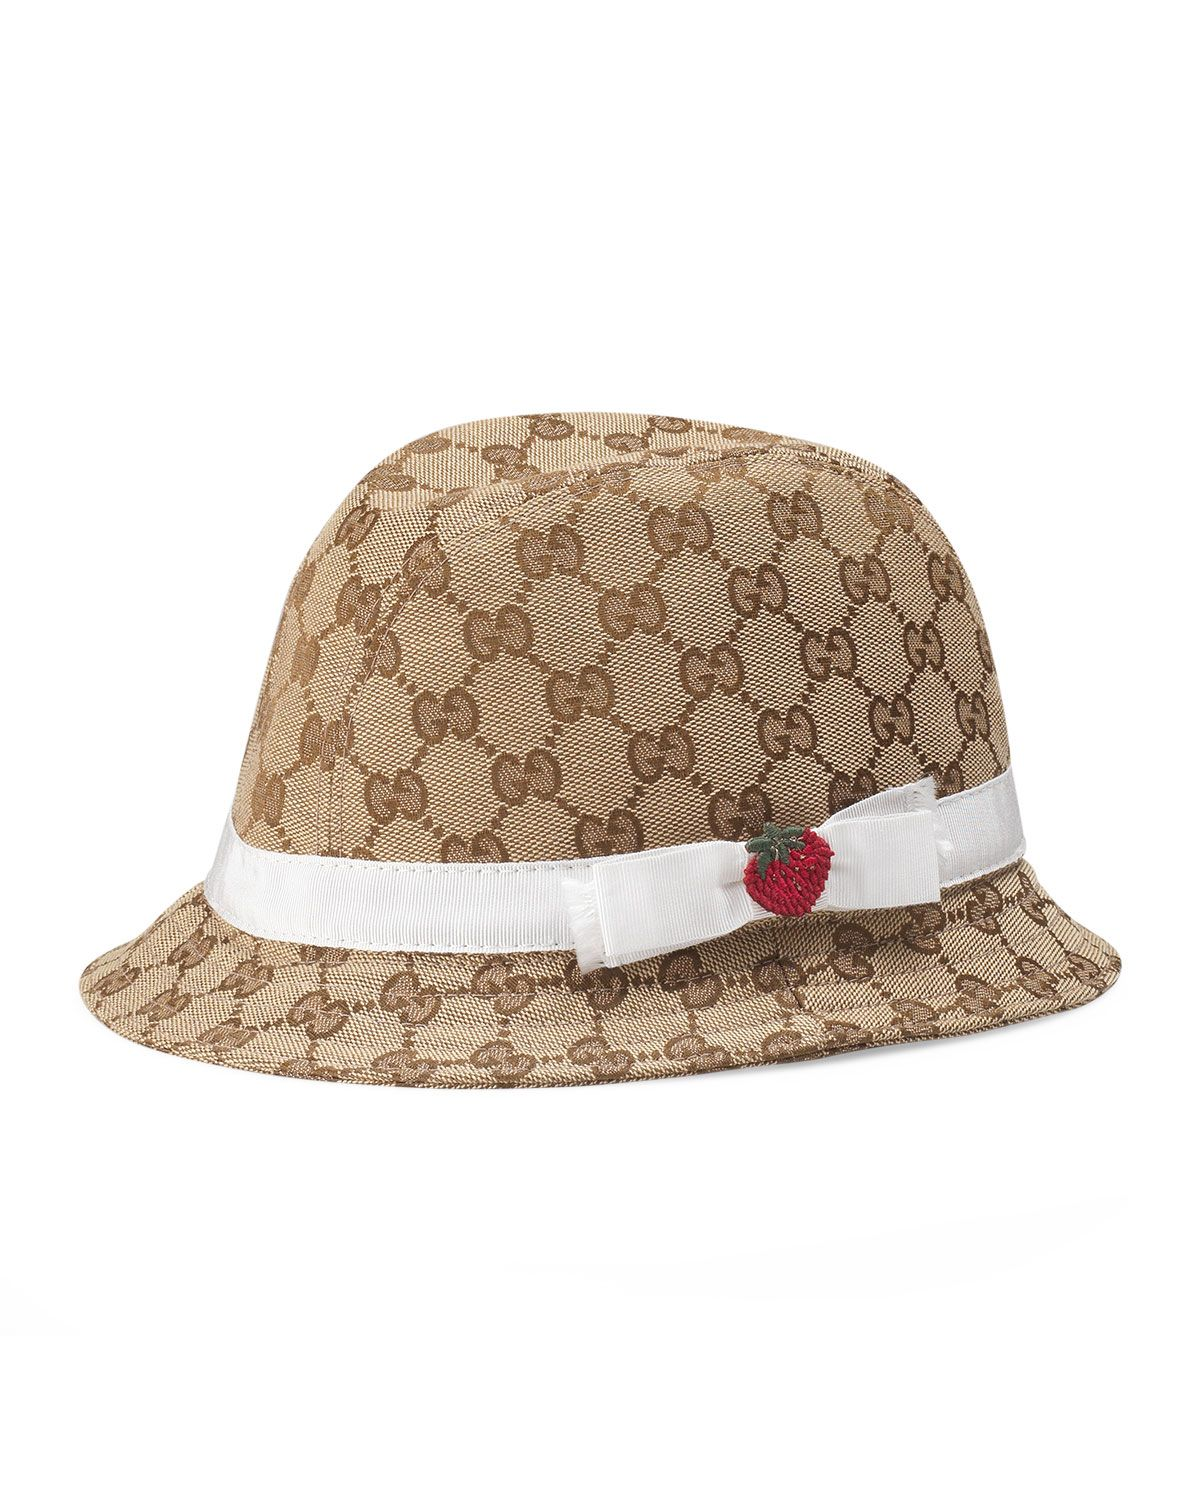 8ee13ff4dc7 Girls  GG Canvas Fedora Hat w  Strawberry